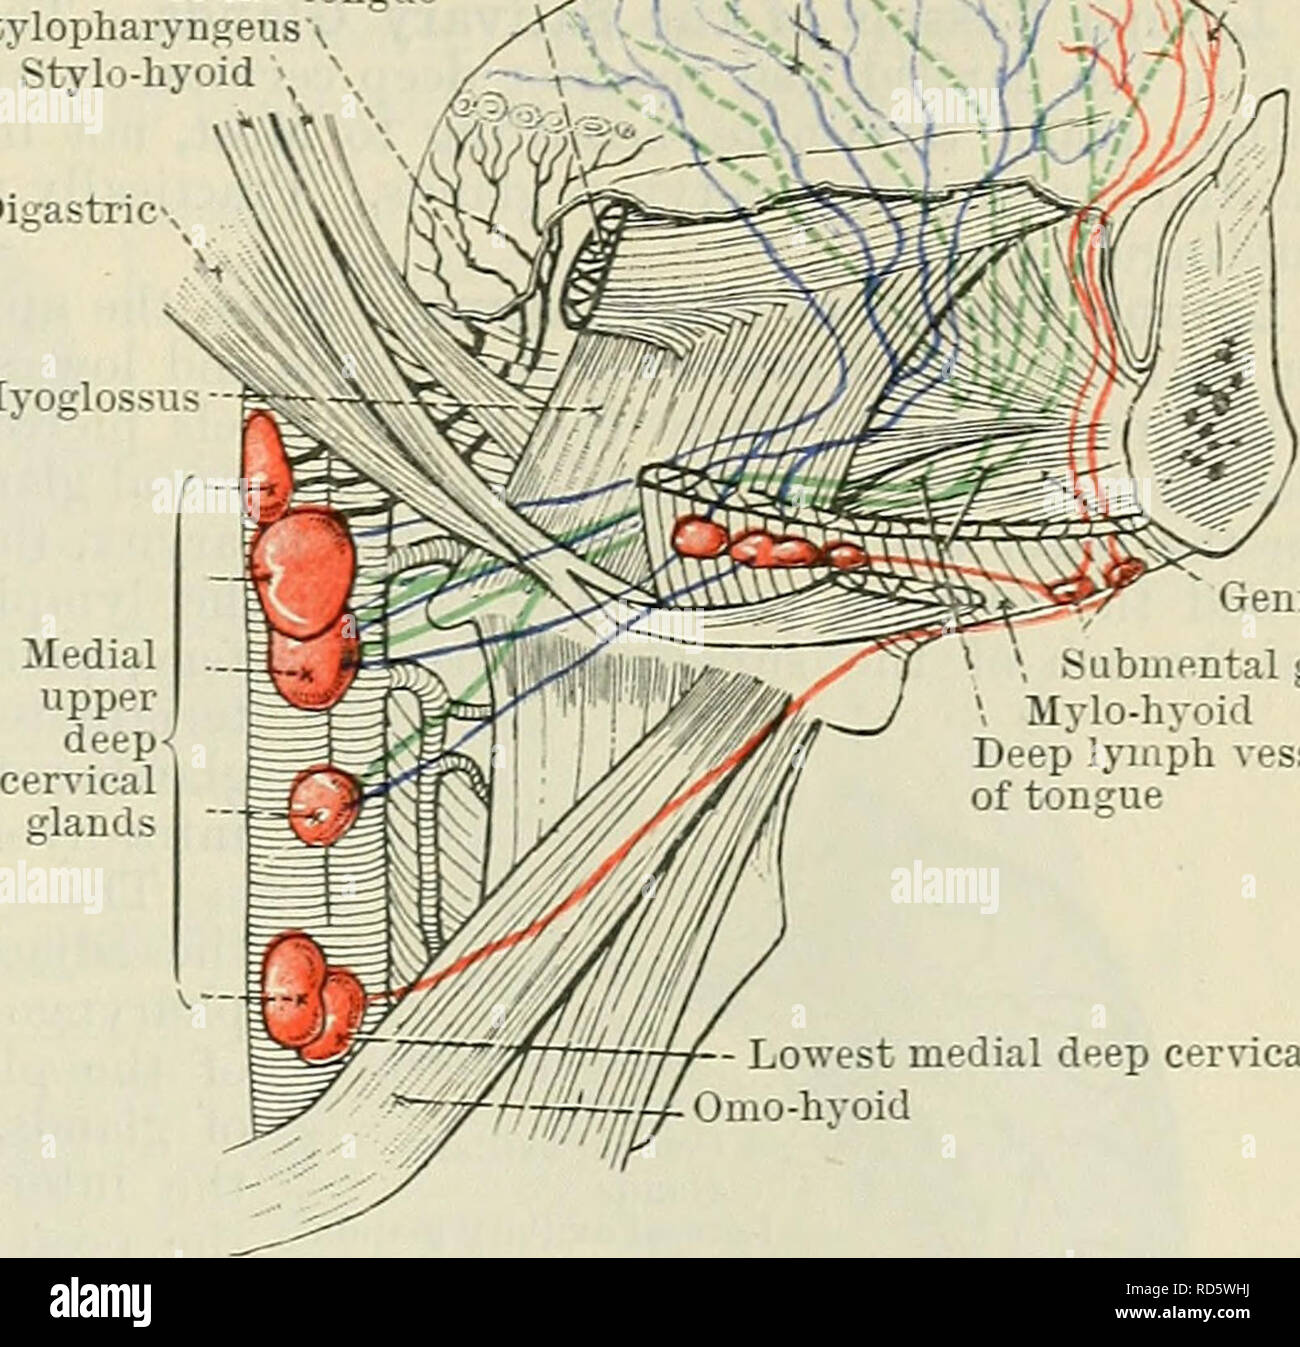 geniohyoid ubmental glands medial - cervical gland fig  803 �diagram of  side-view the lymph vessels of the modified